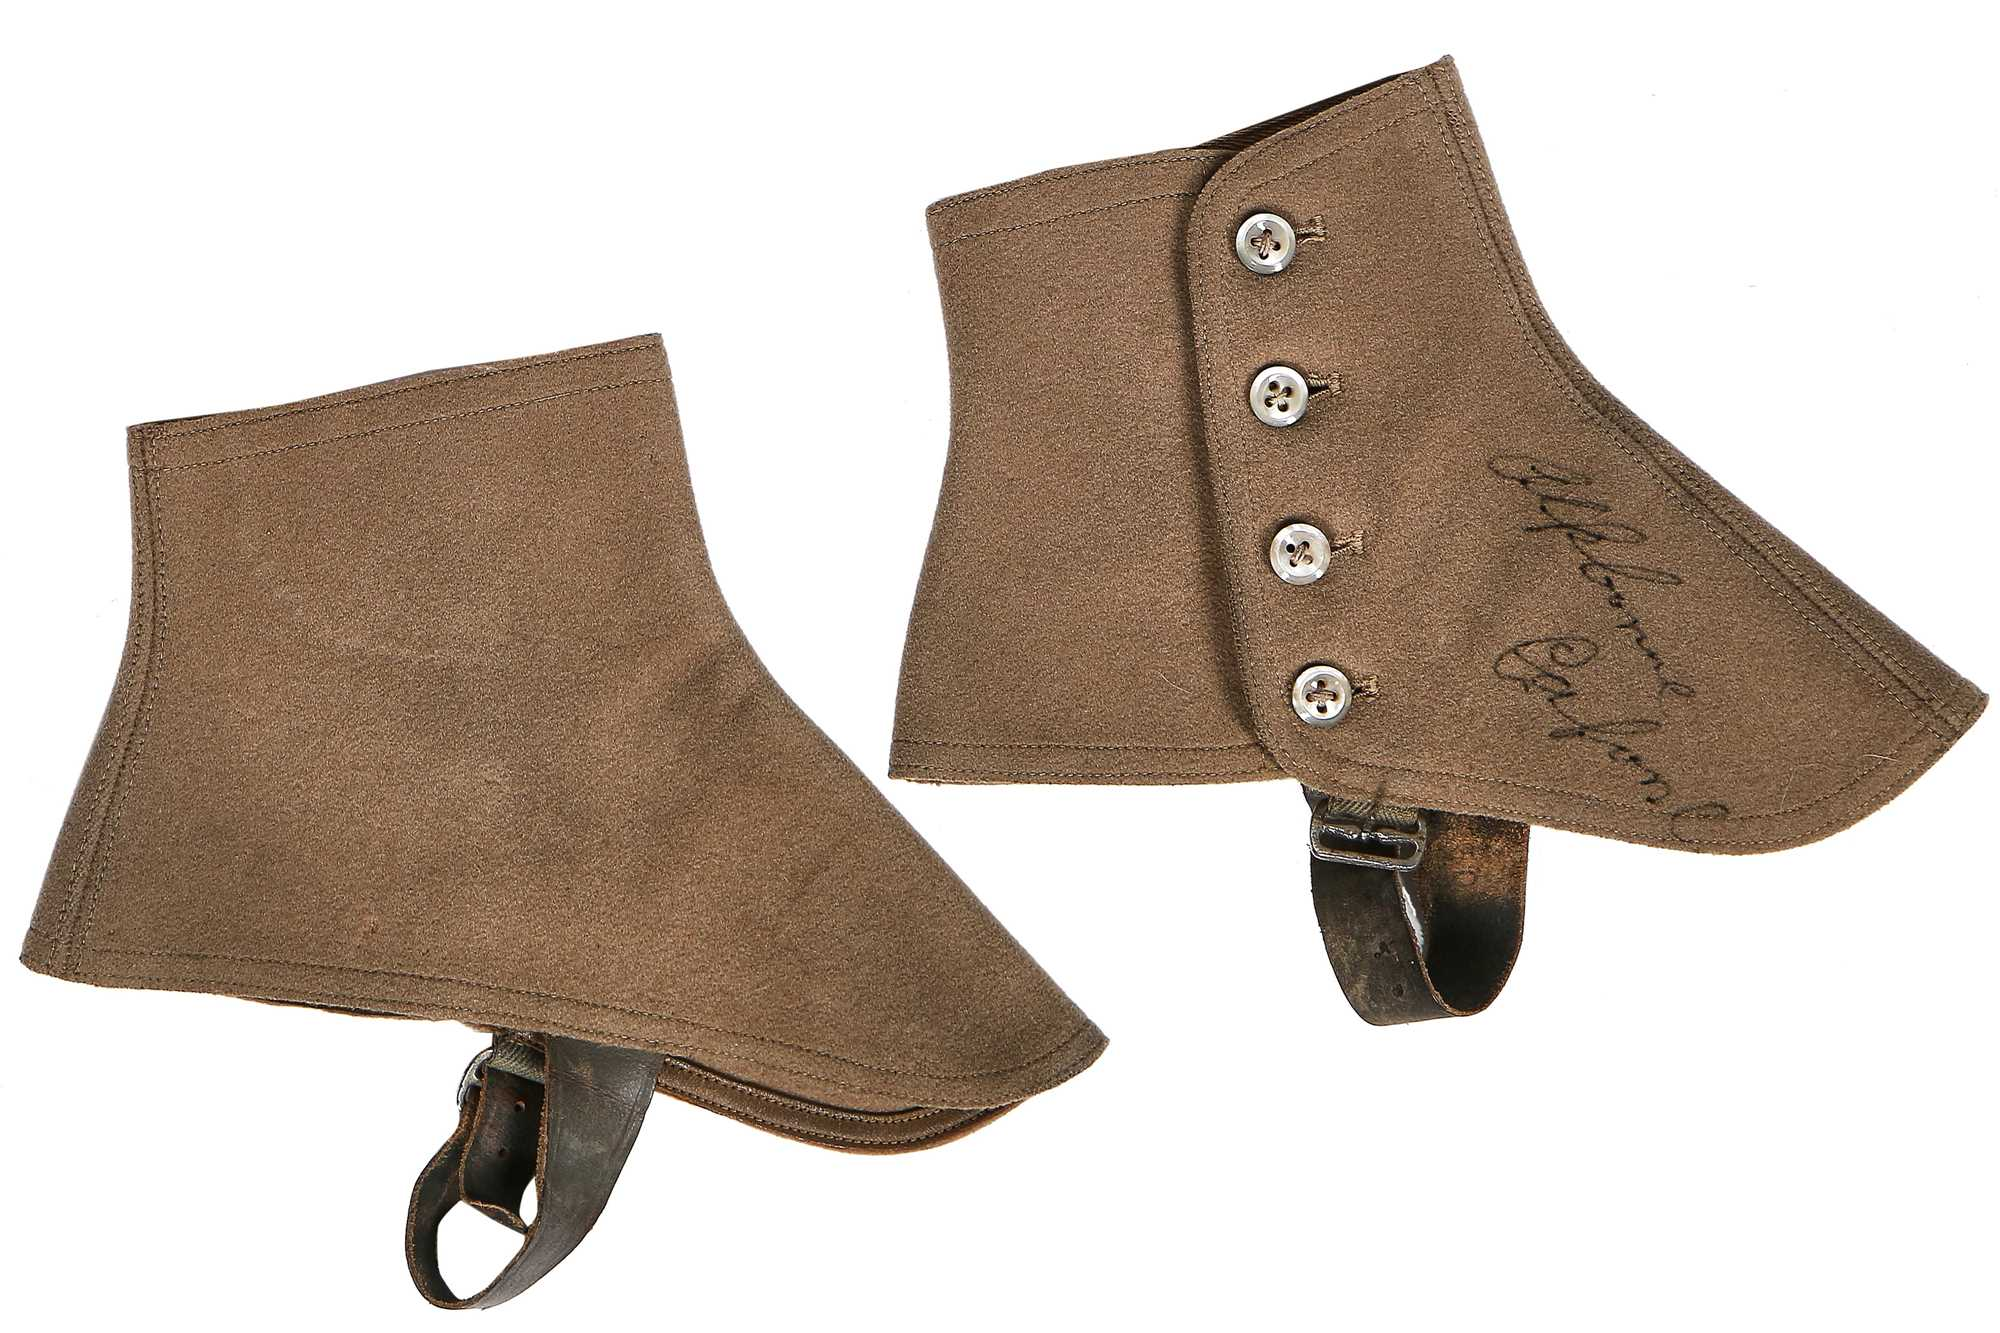 Lot 46-A rare pair of spats autographed by Al (Scarface) Capone, 1920s